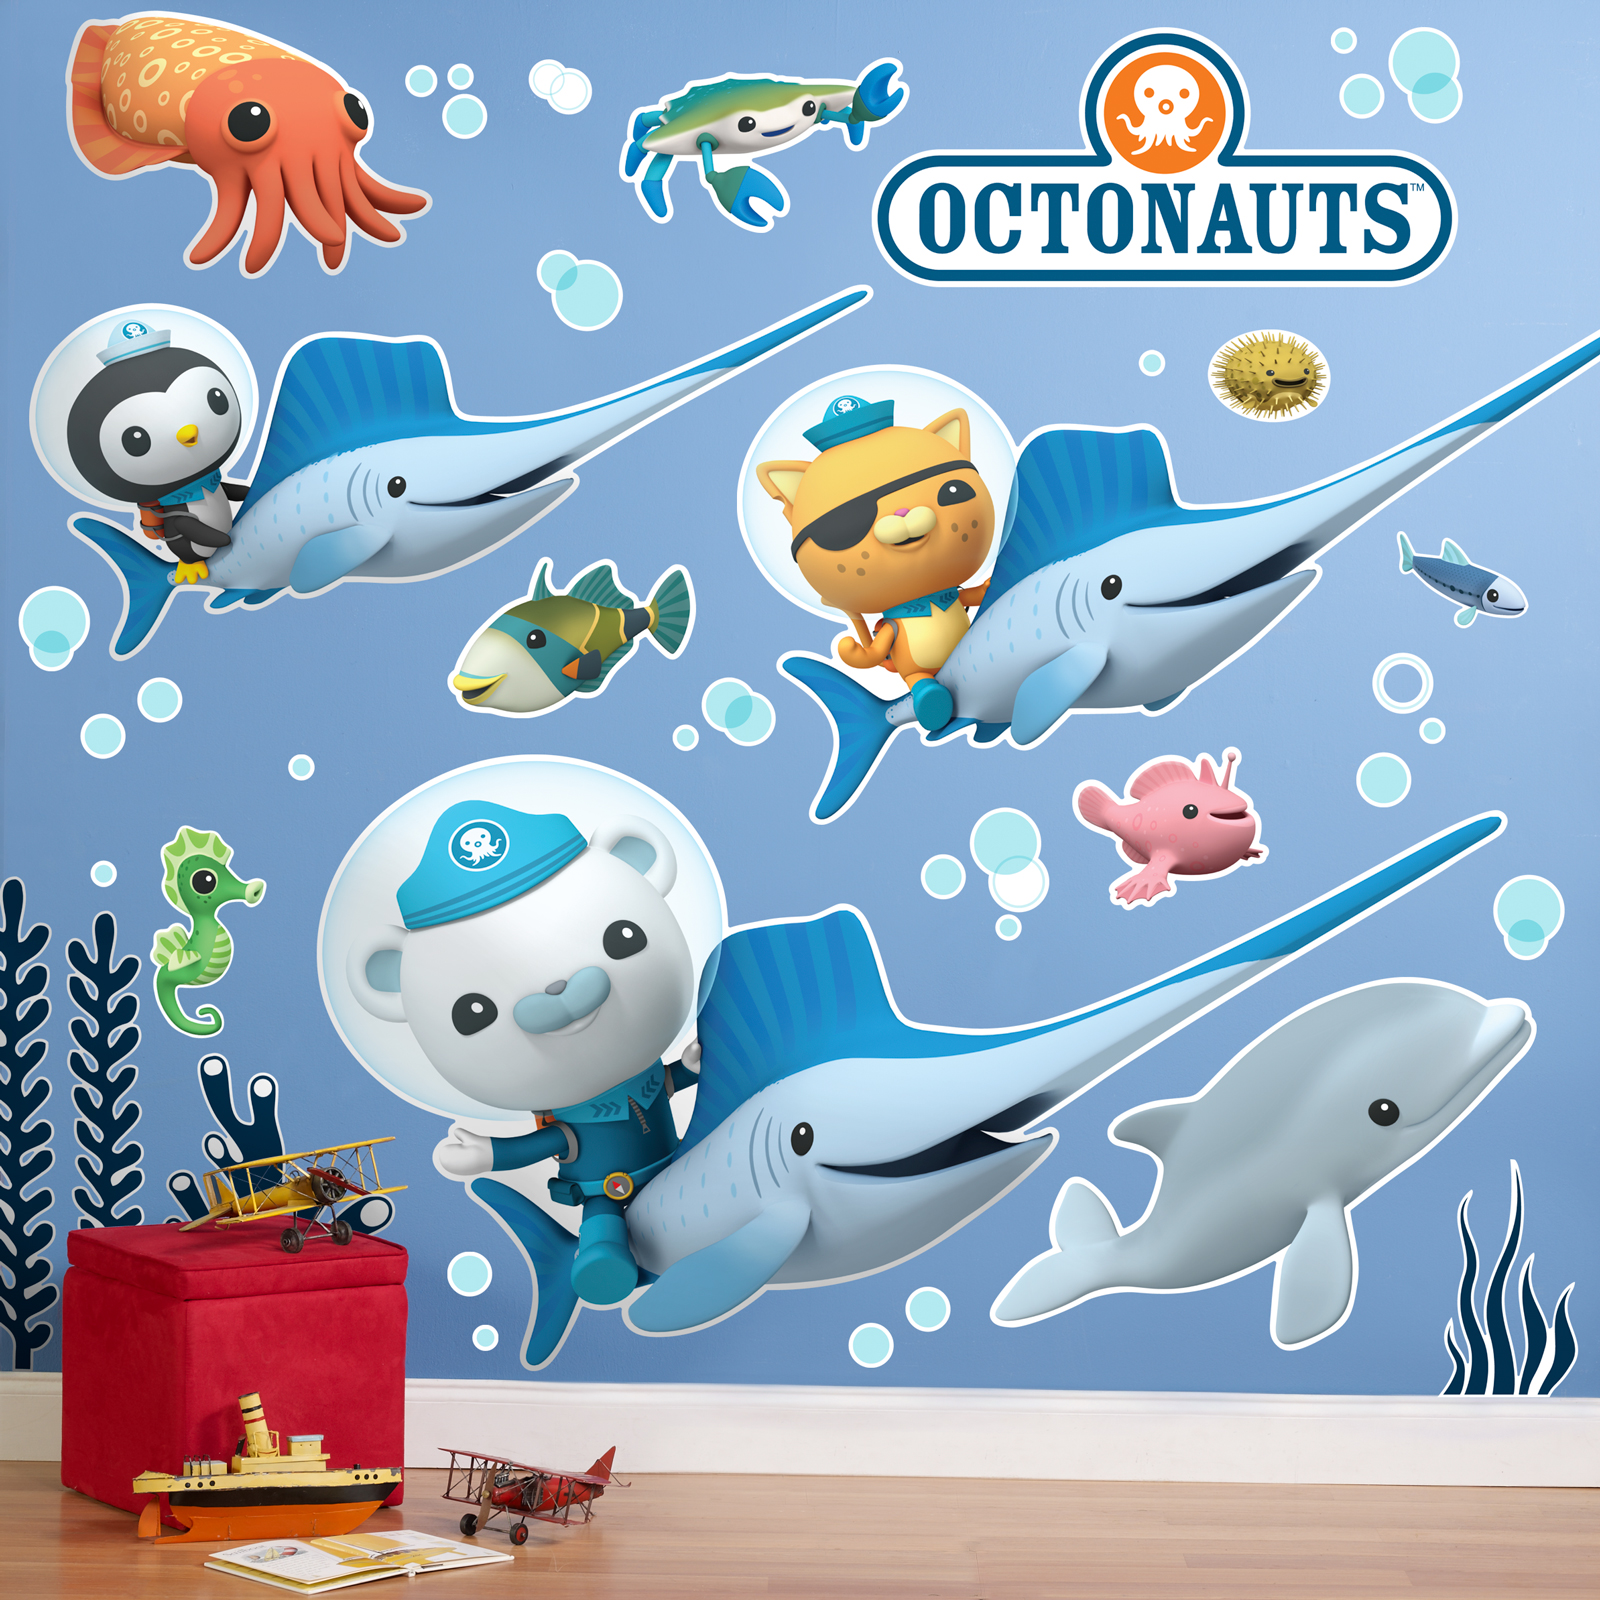 The Octonauts Giant Wall Decals Partybell Com